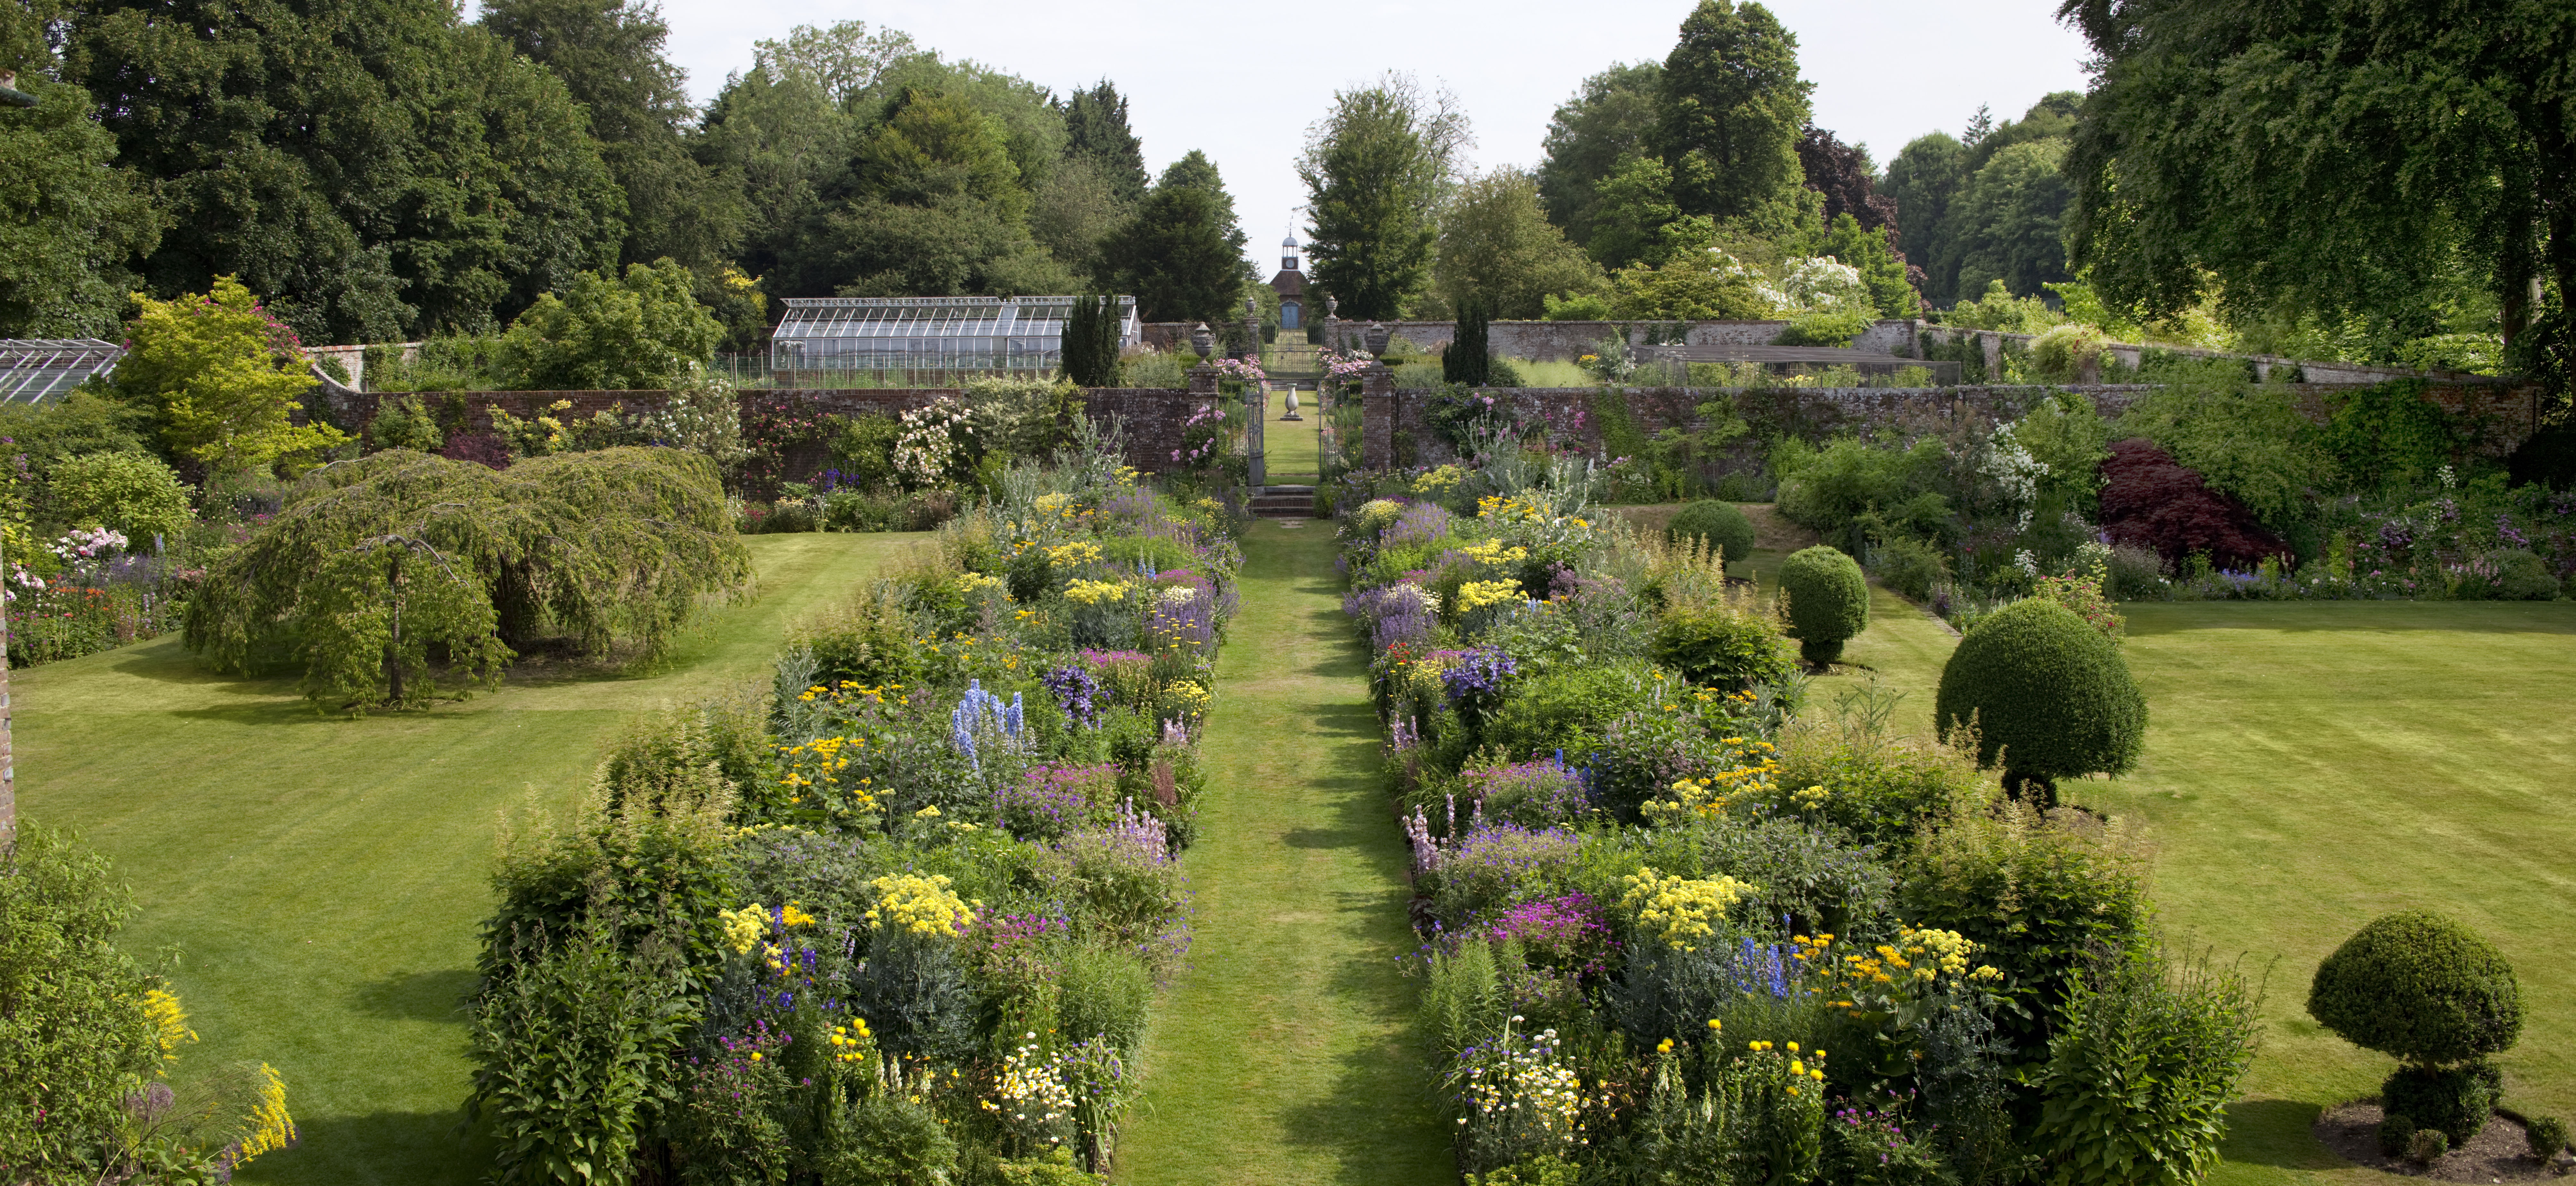 Looking down the mirrored herbaceous border in the gardens at Bramdean House.